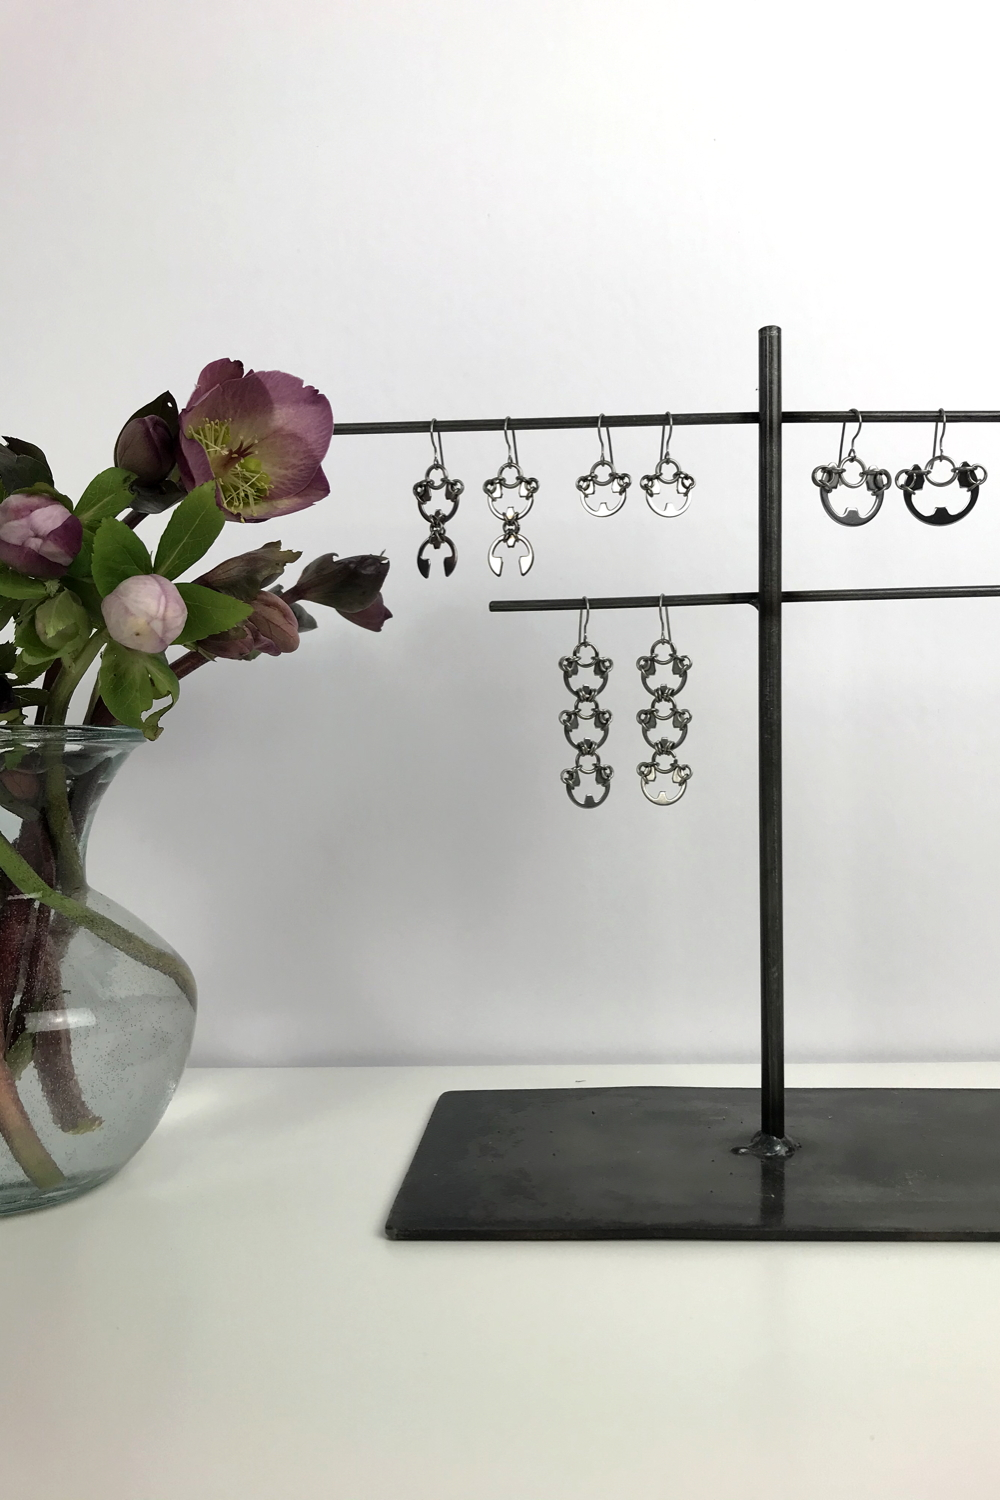 Cut pink hellebores in a glass vase, with Wraptillion's Scarab Earrings, Lotus Earrings, Small Poppy Earrings, and Large Poppy Earrings.